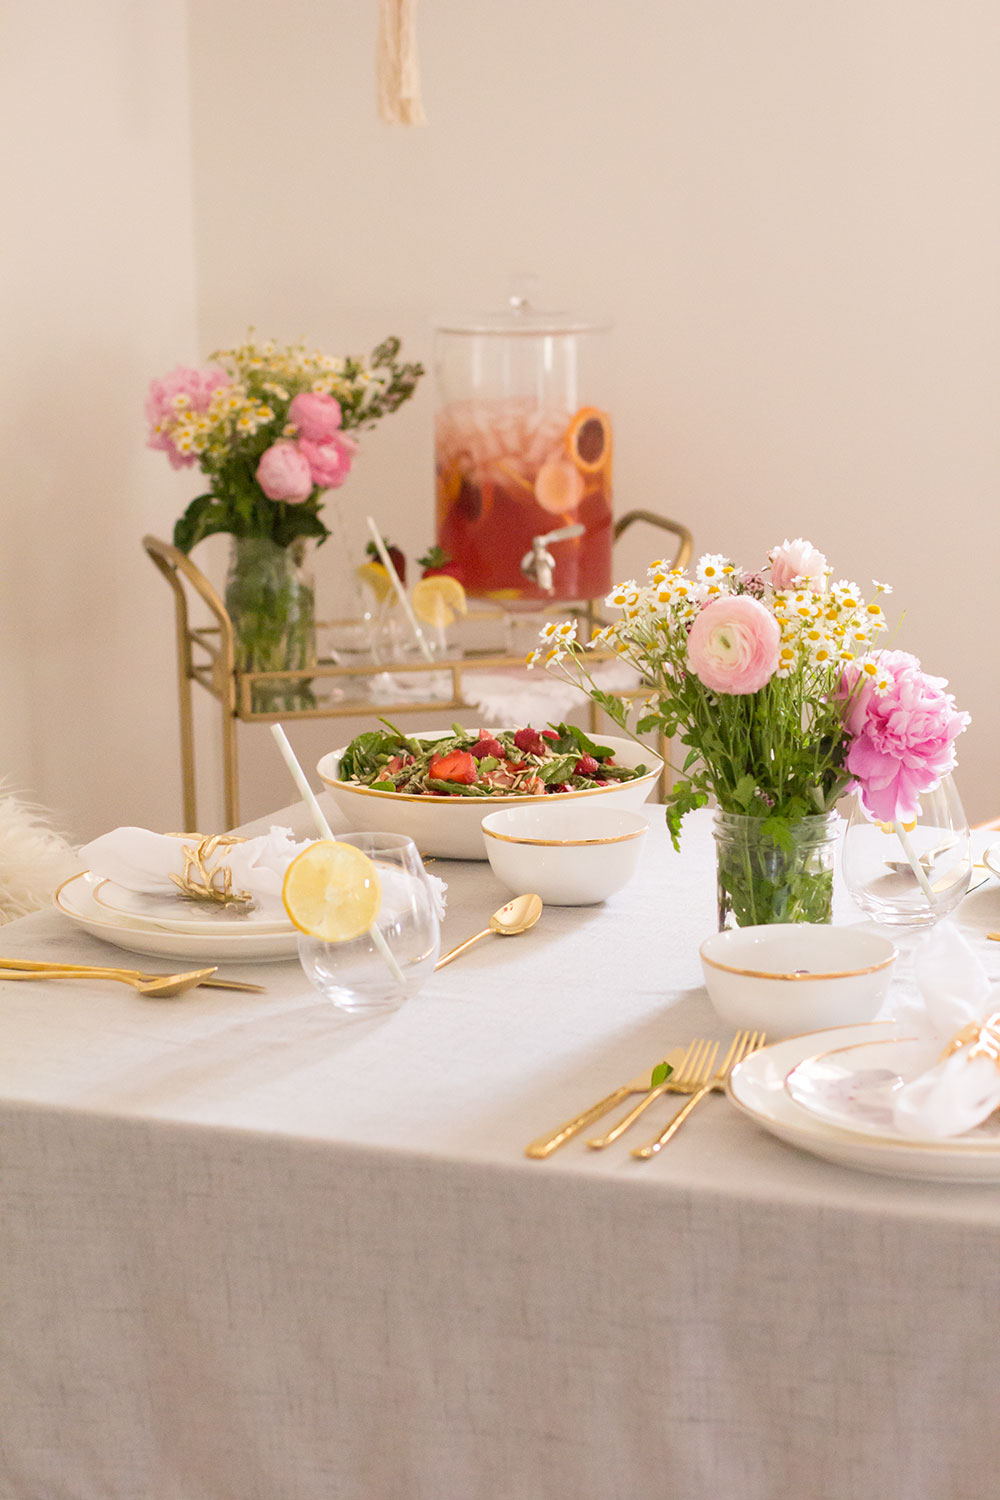 a pretty mama luncheon with friends | thelovedesignedlife.com